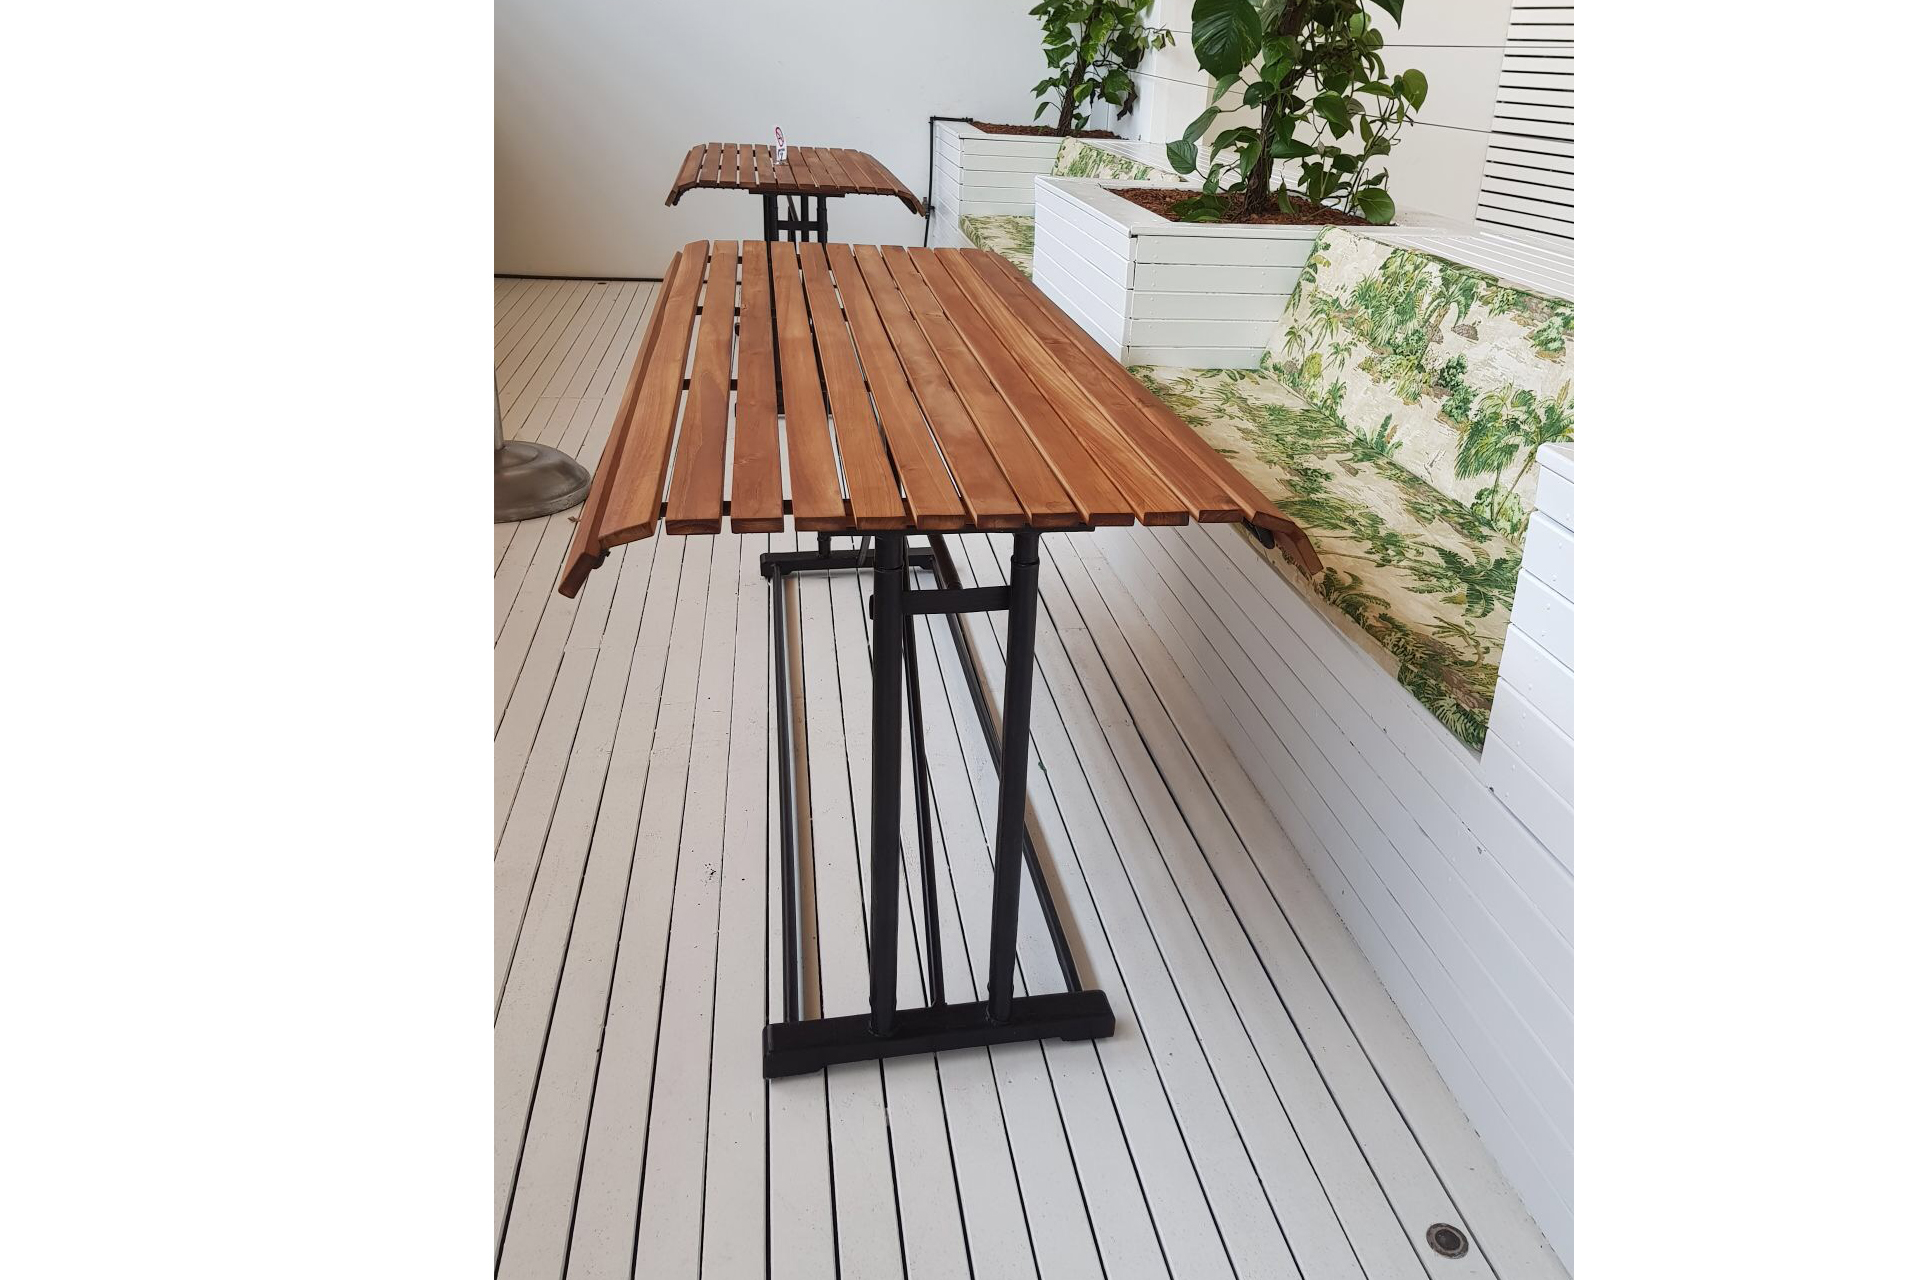 Picnic Table Rattan Commercial Furniture Supplier - Picnic table supplier